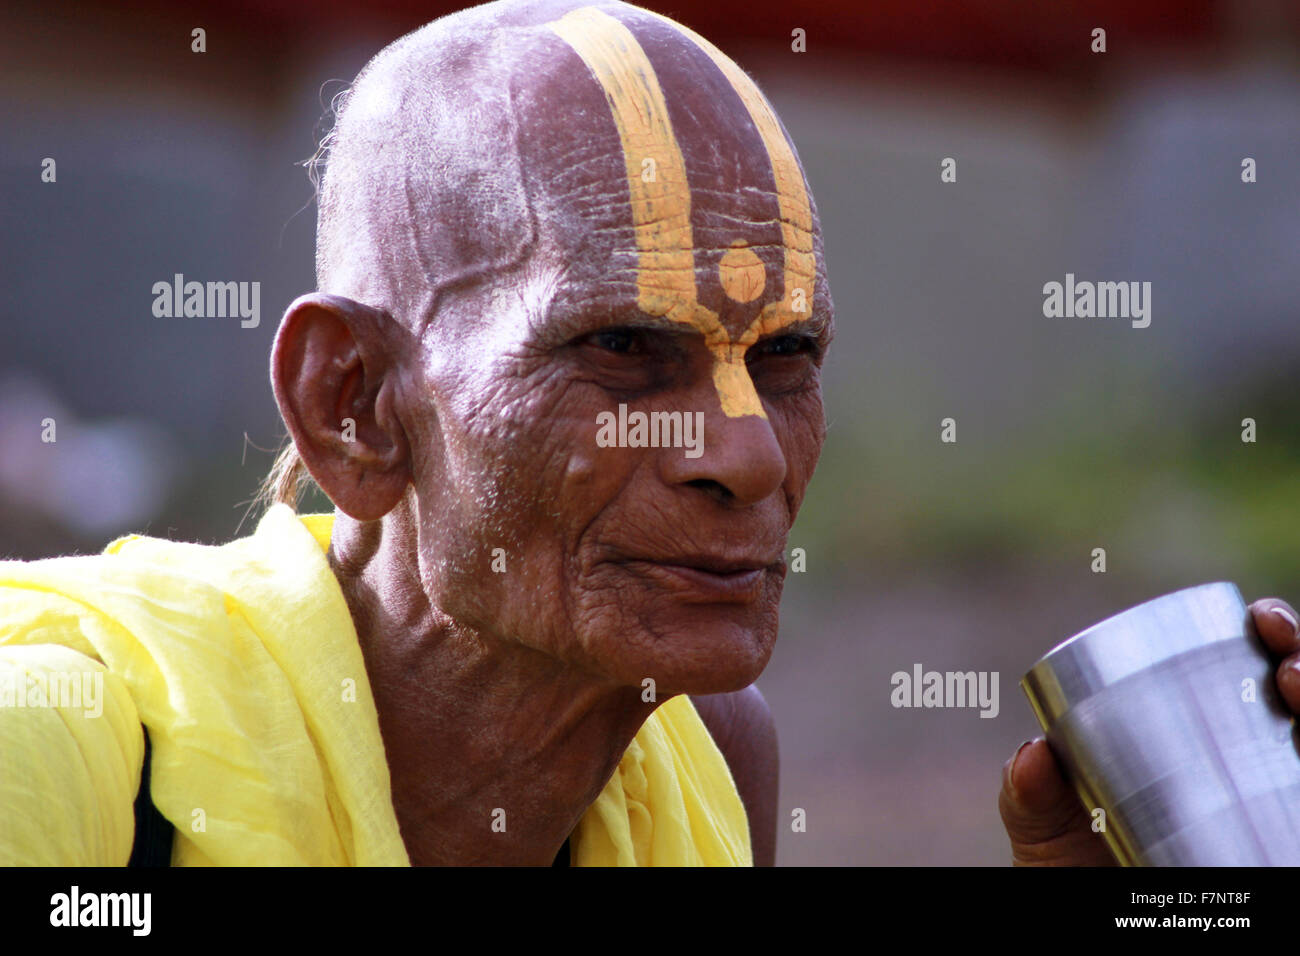 Sadhu with painted forehead Kumbh Mela, Nasik, Maharashtra, India - Stock Image